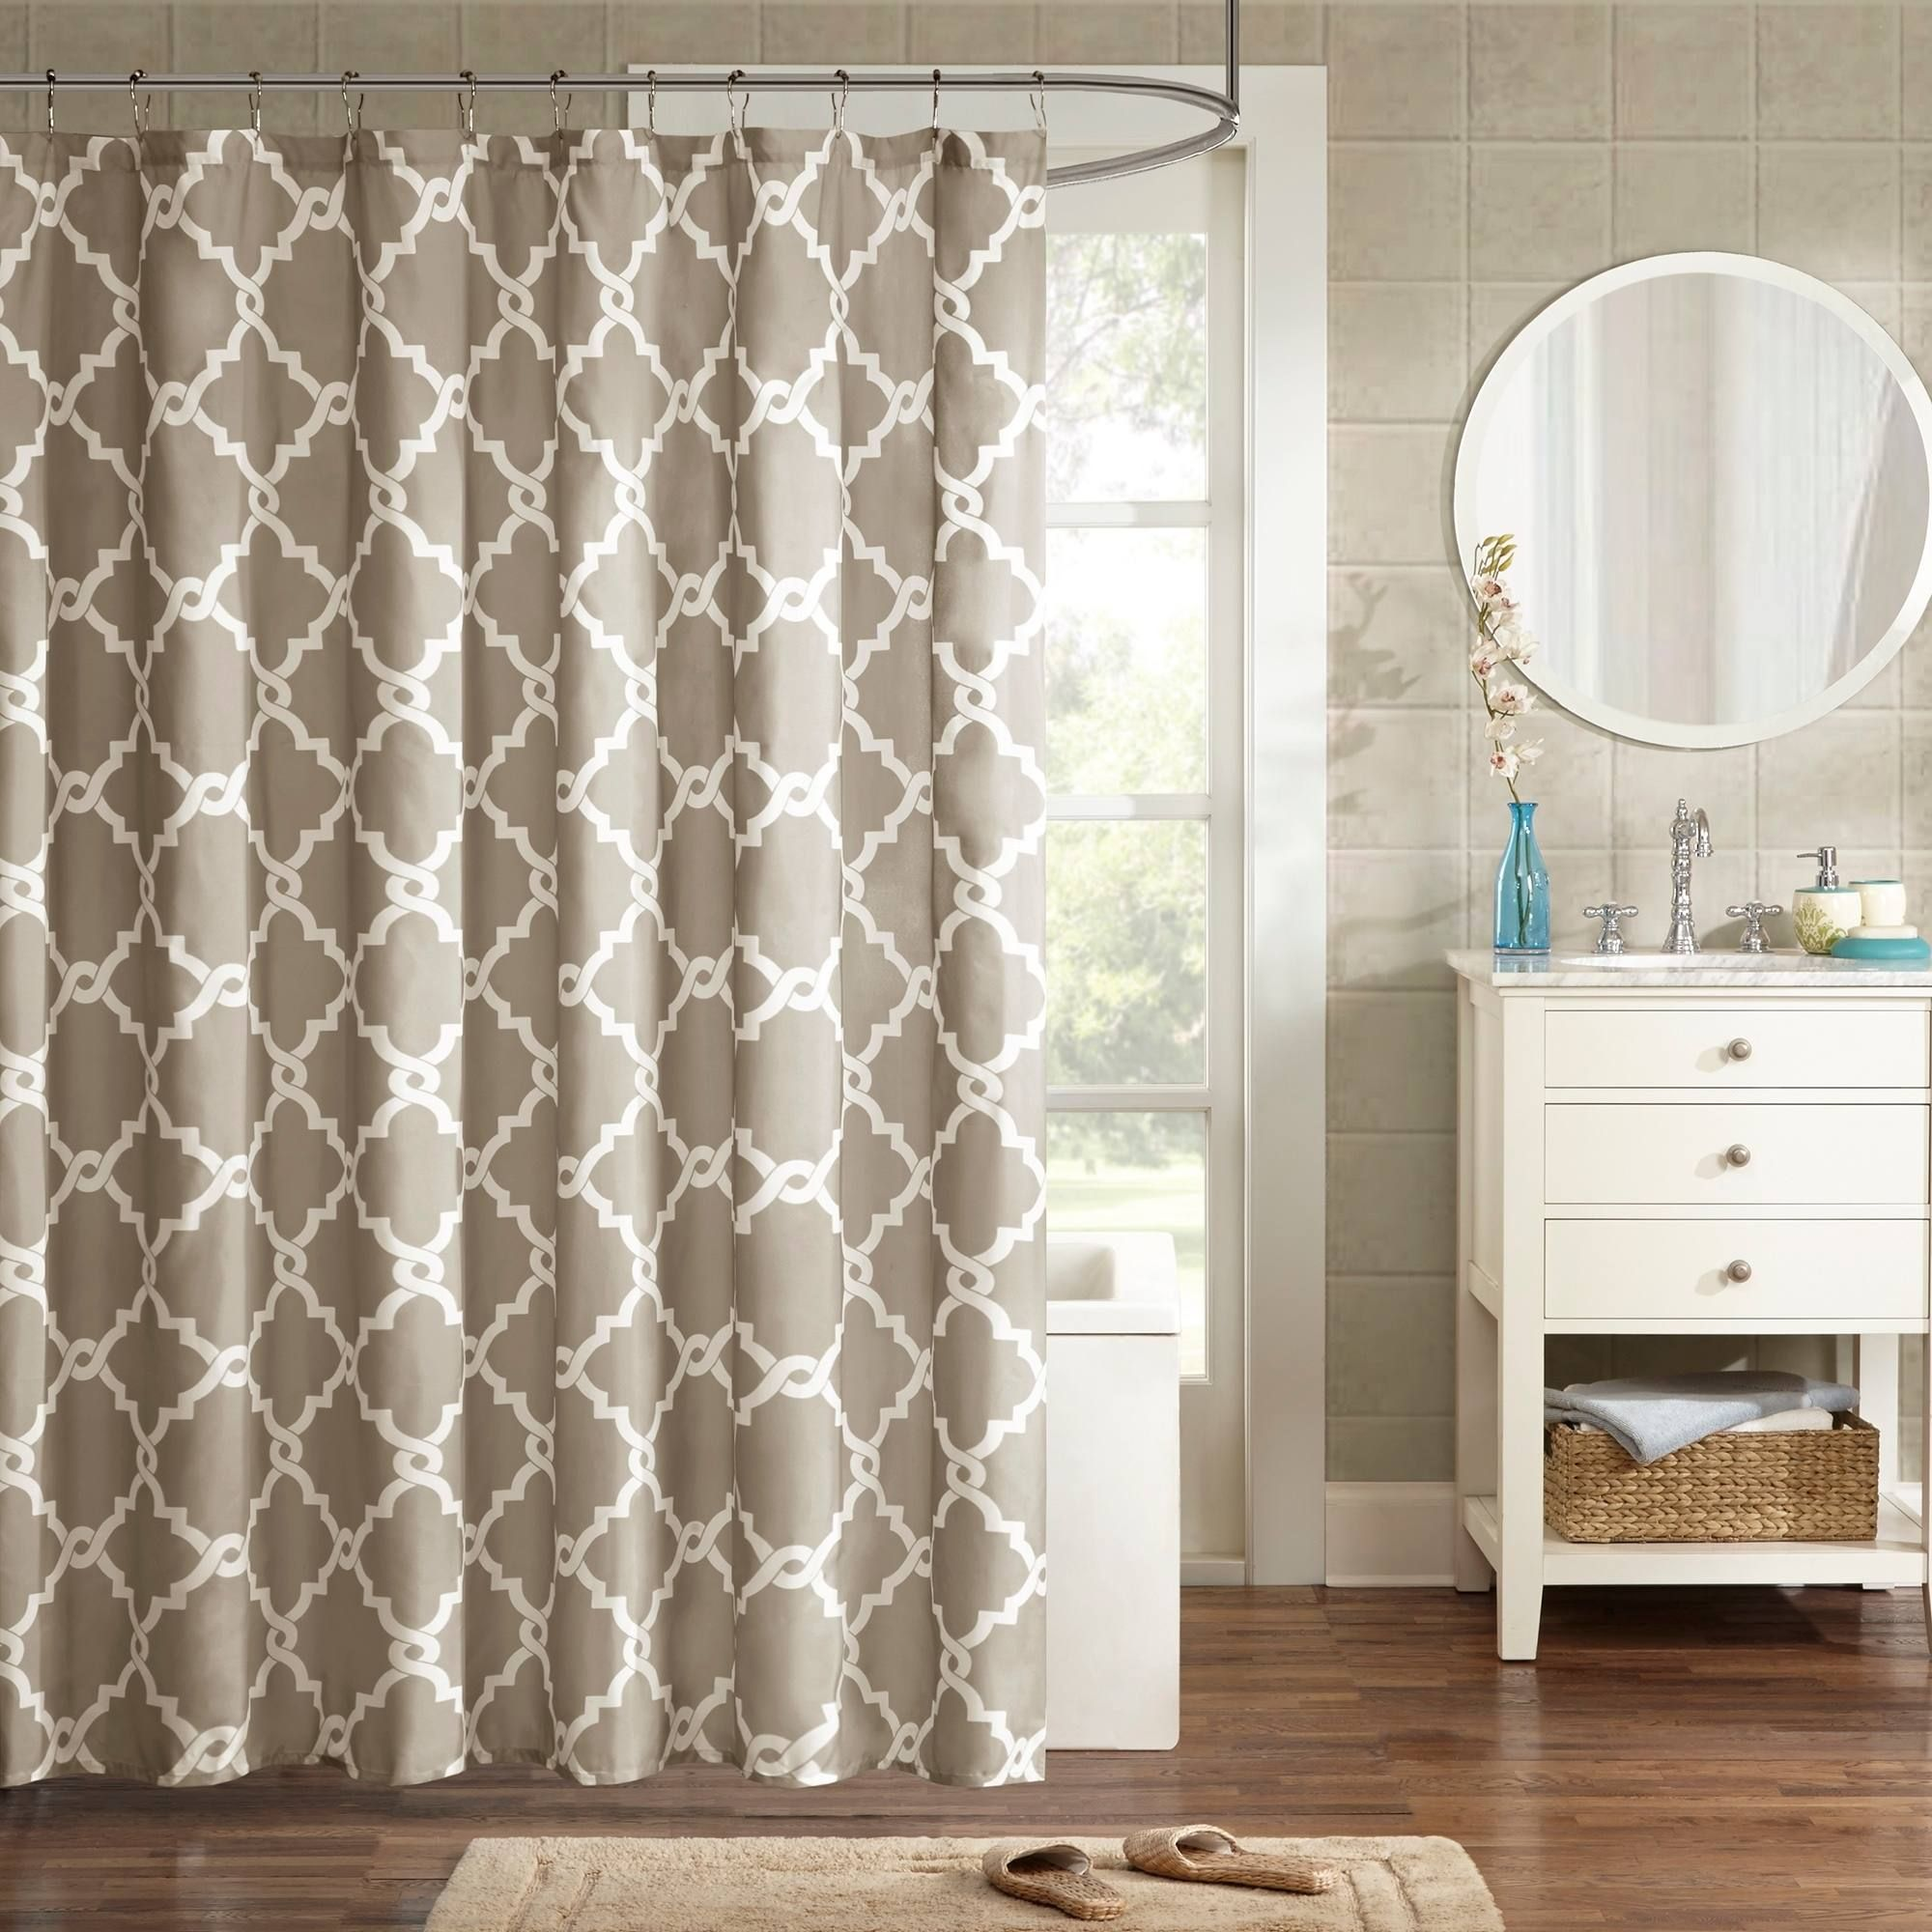 Clay Alder Home Niantic Blue Chevron Shower Curtain Taupe Brown